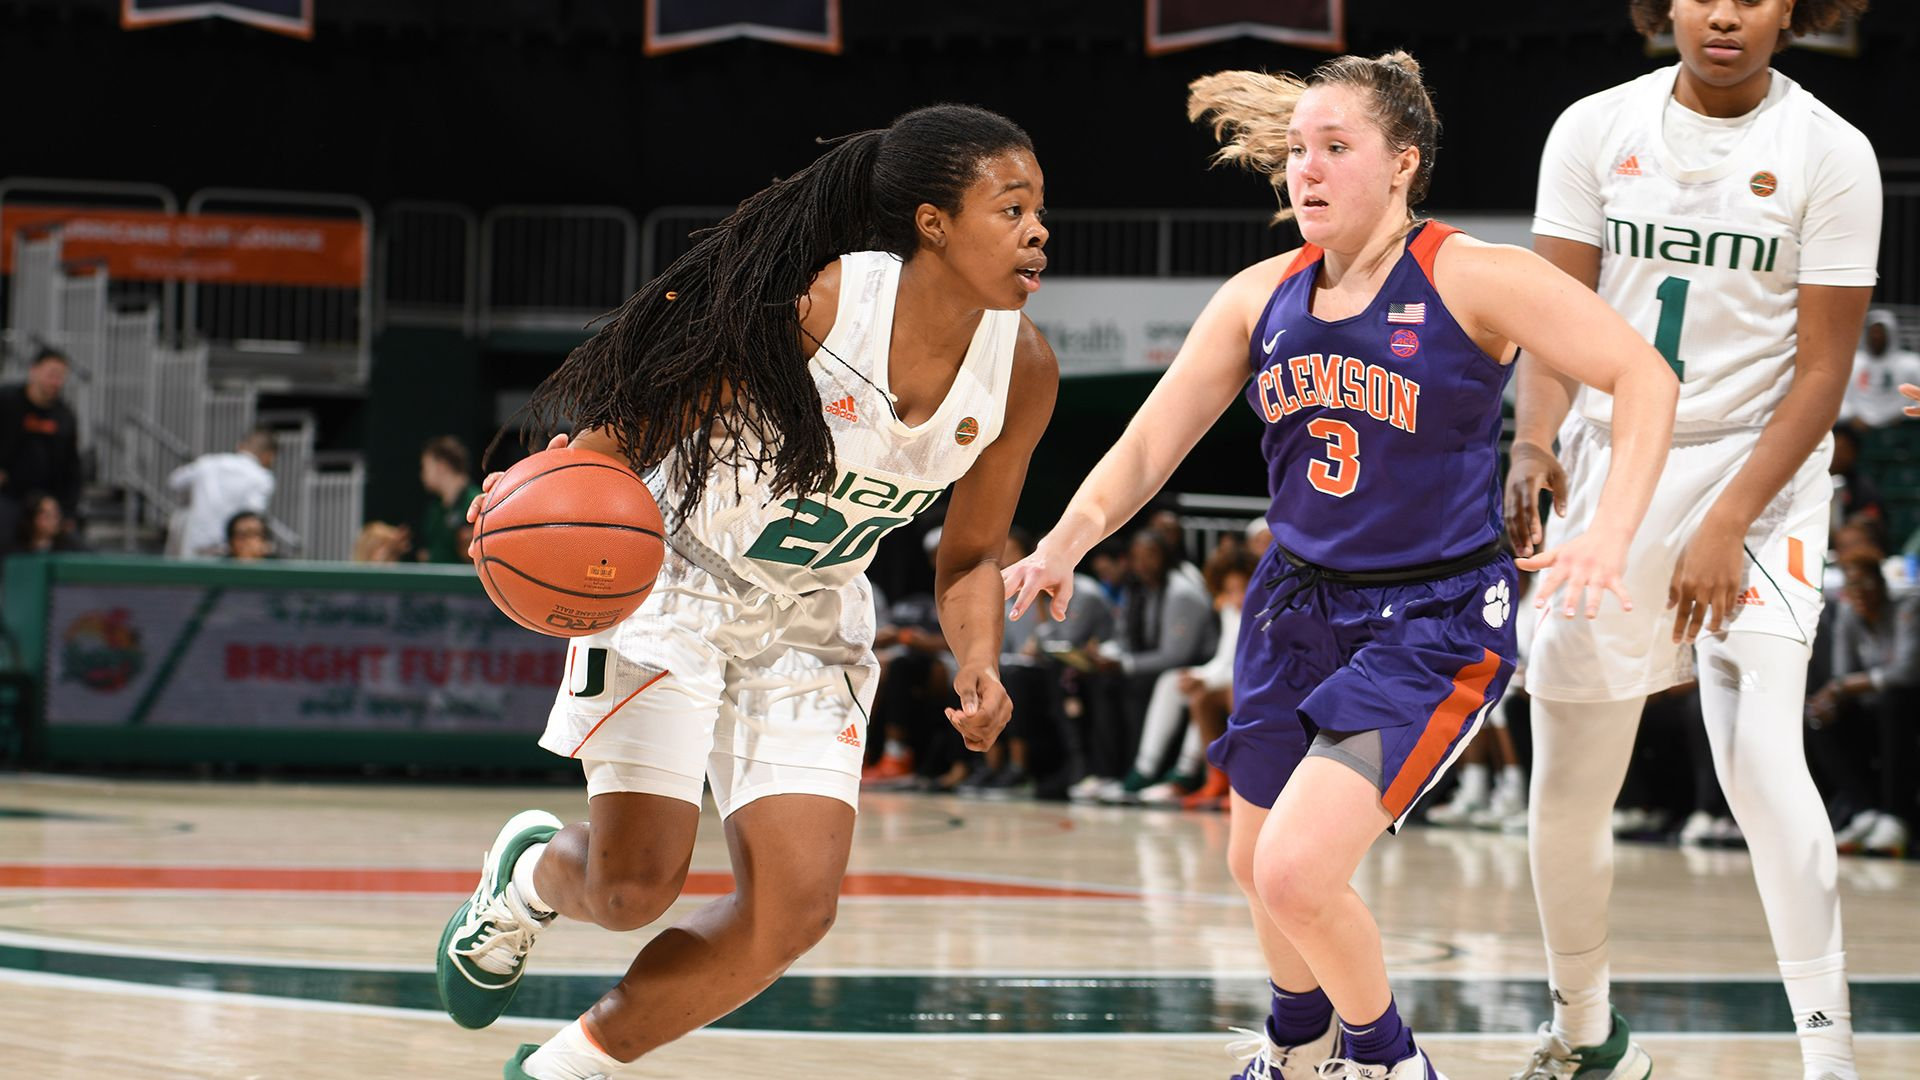 Canes Outlast Tigers at Home